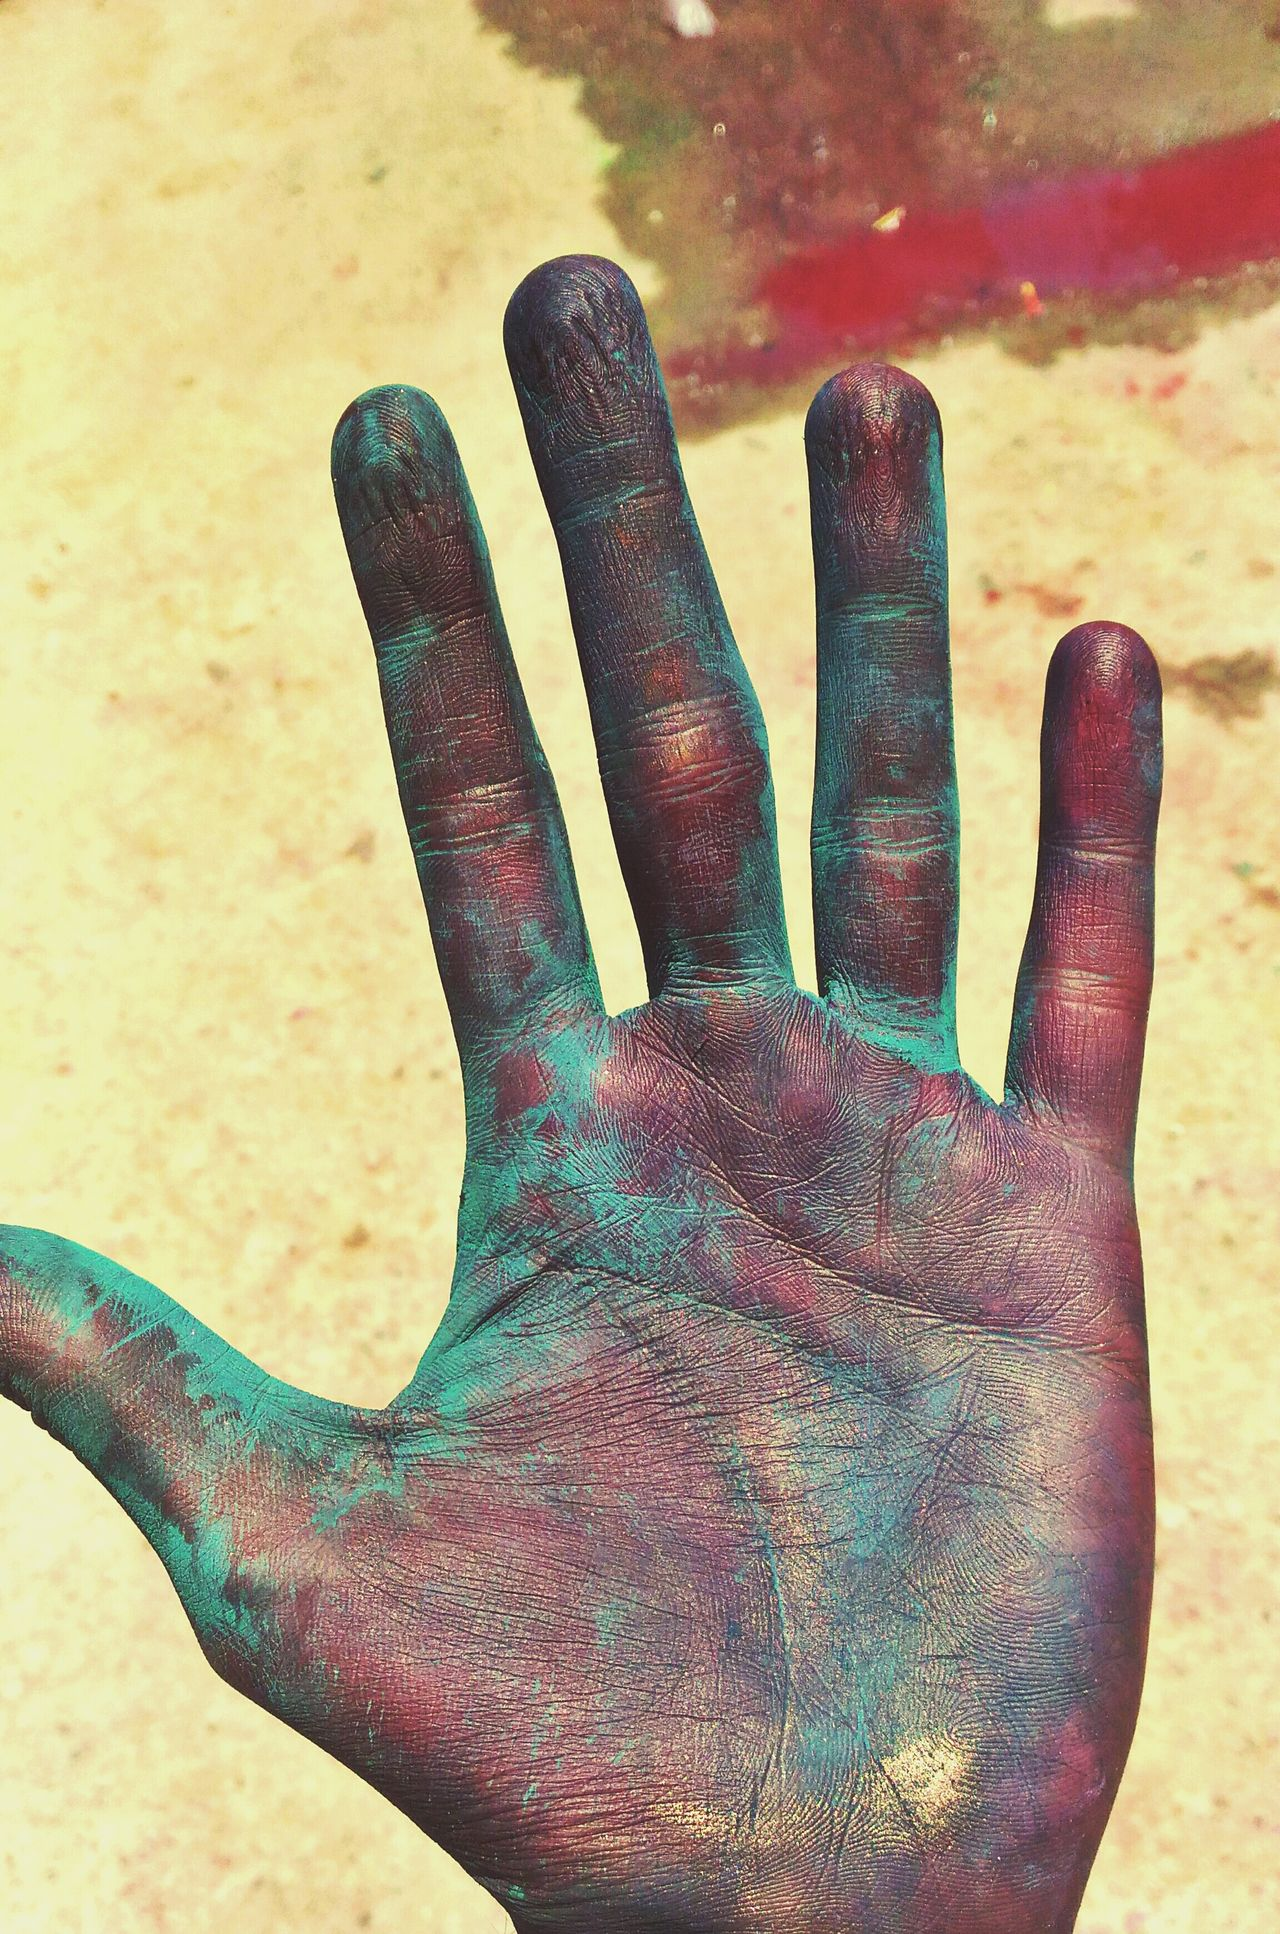 Ugly hands Ugly Hands Holi Holi Festival Of Colours Colorful Hand Details Of Colour Details Of My Hand